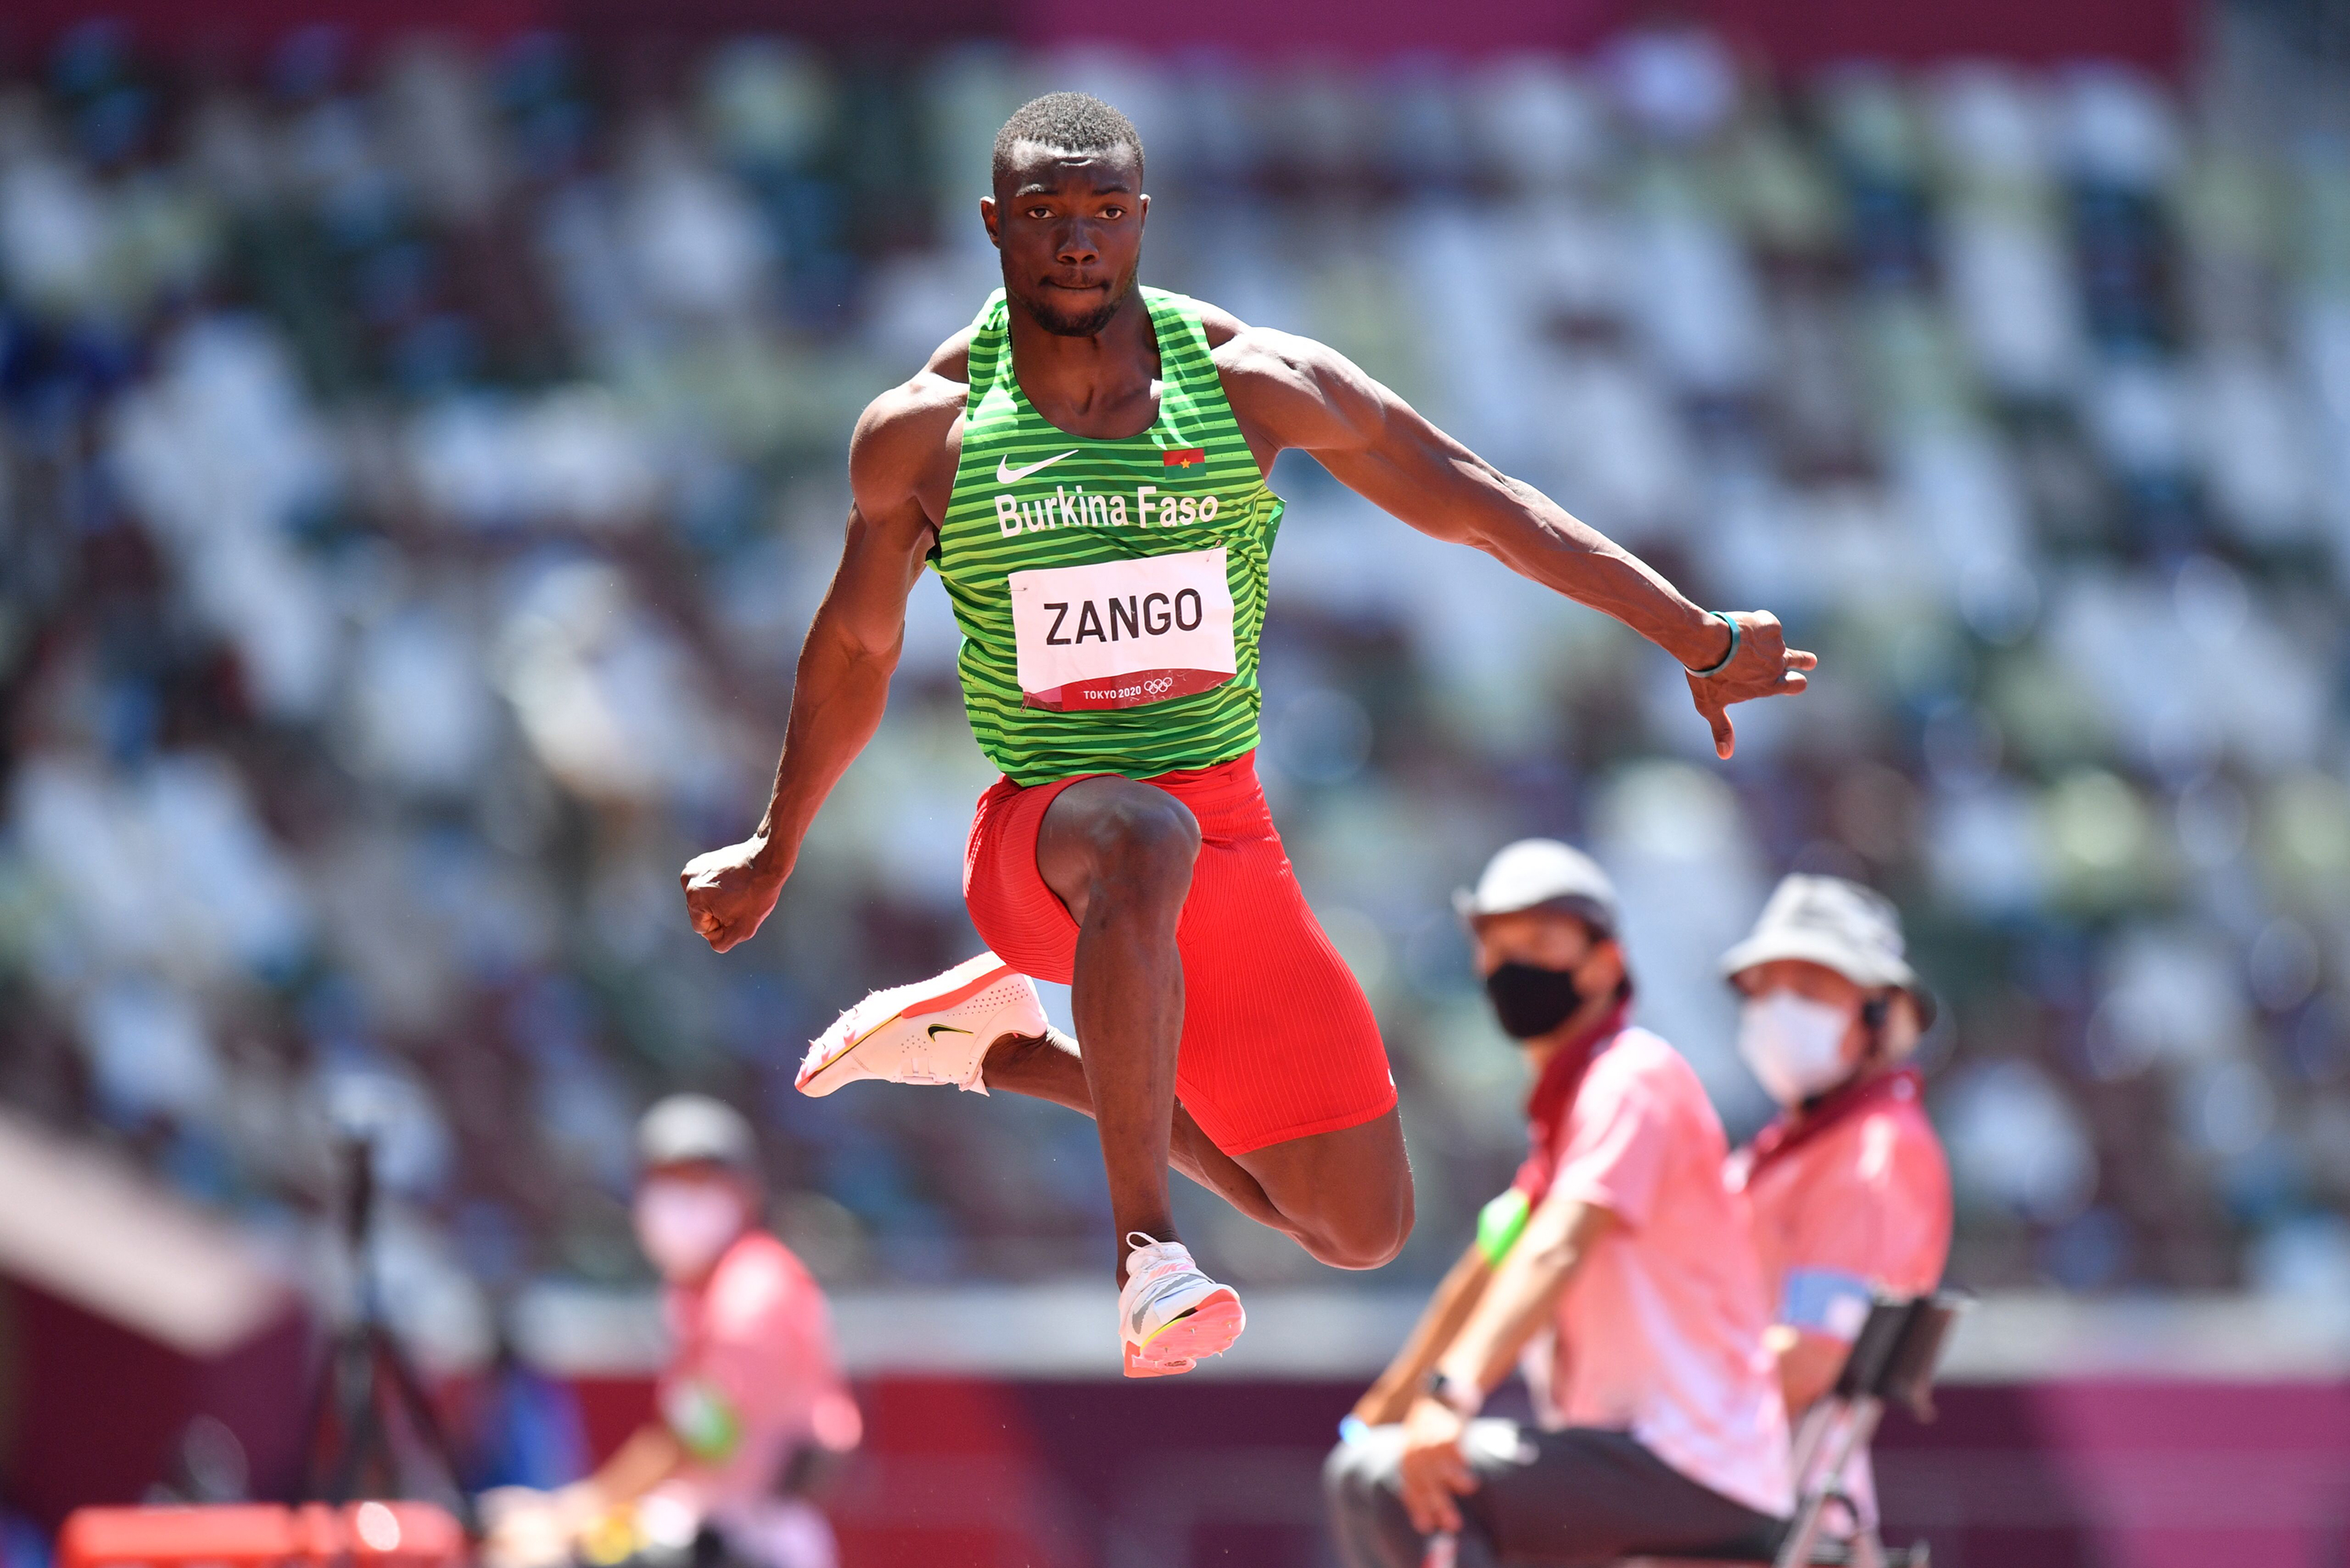 Burkina Faso's Hugues Fabrice Zango competes in the triple jump final on Thursday, August 5.